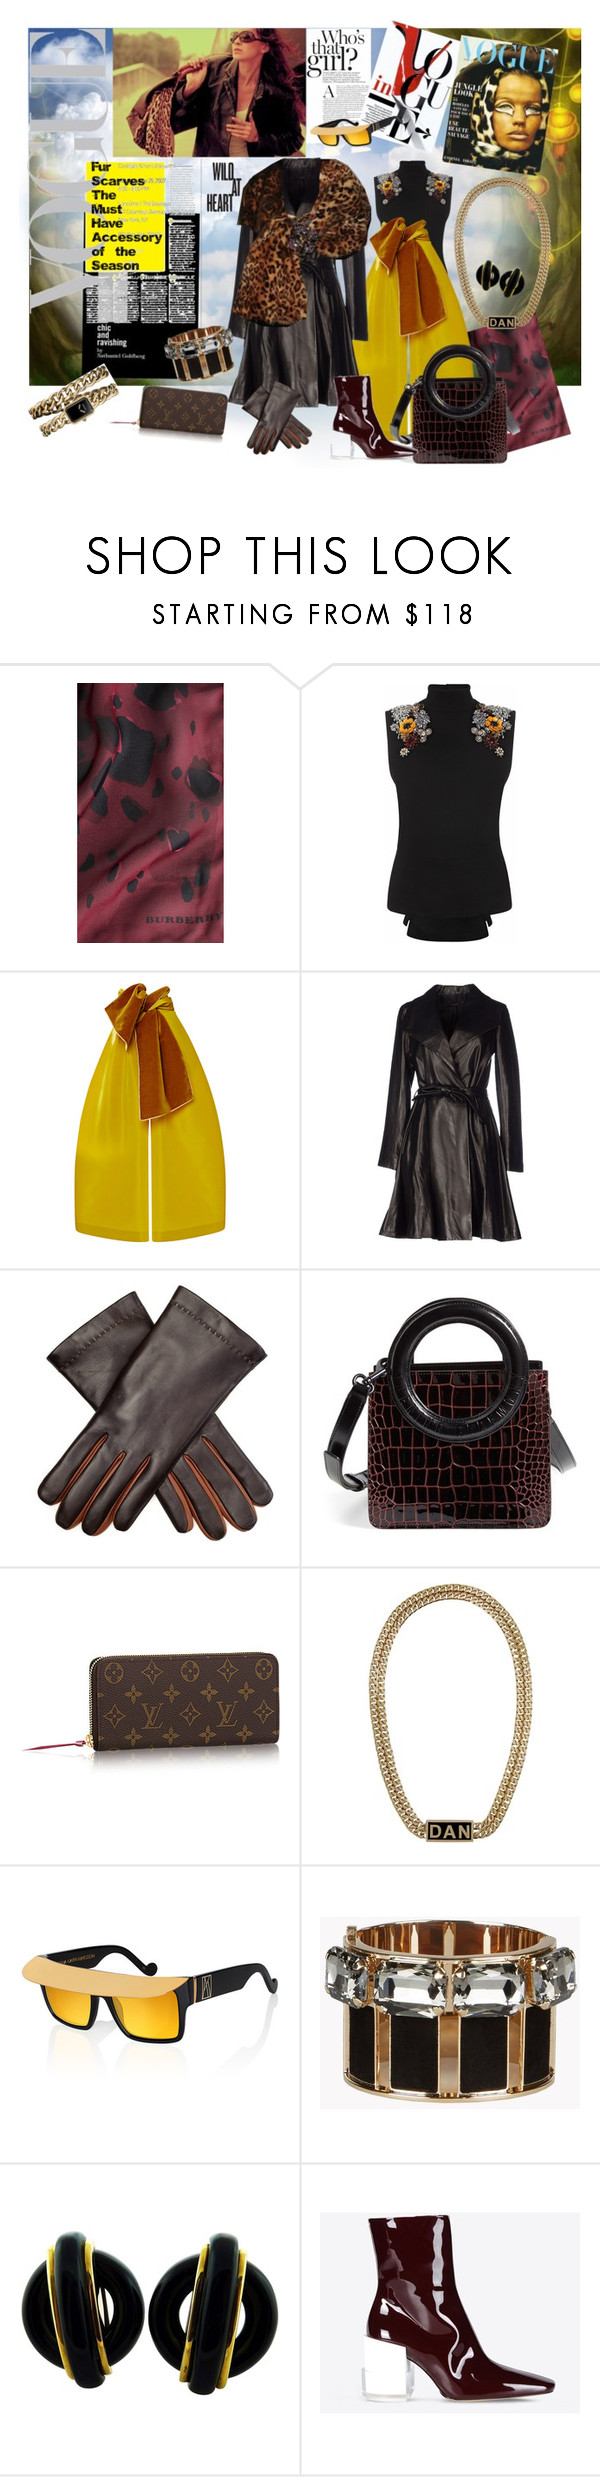 """Fur Scarves the must-have of season. Jungle look."" by inga-baltic on Polyvore featuring Burberry, Alexander McQueen, Rosie Assoulin, The Row, Dsquared2, Opening Ceremony, Anna-Karin Karlsson, Cartier, Maison Margiela and Chanel"